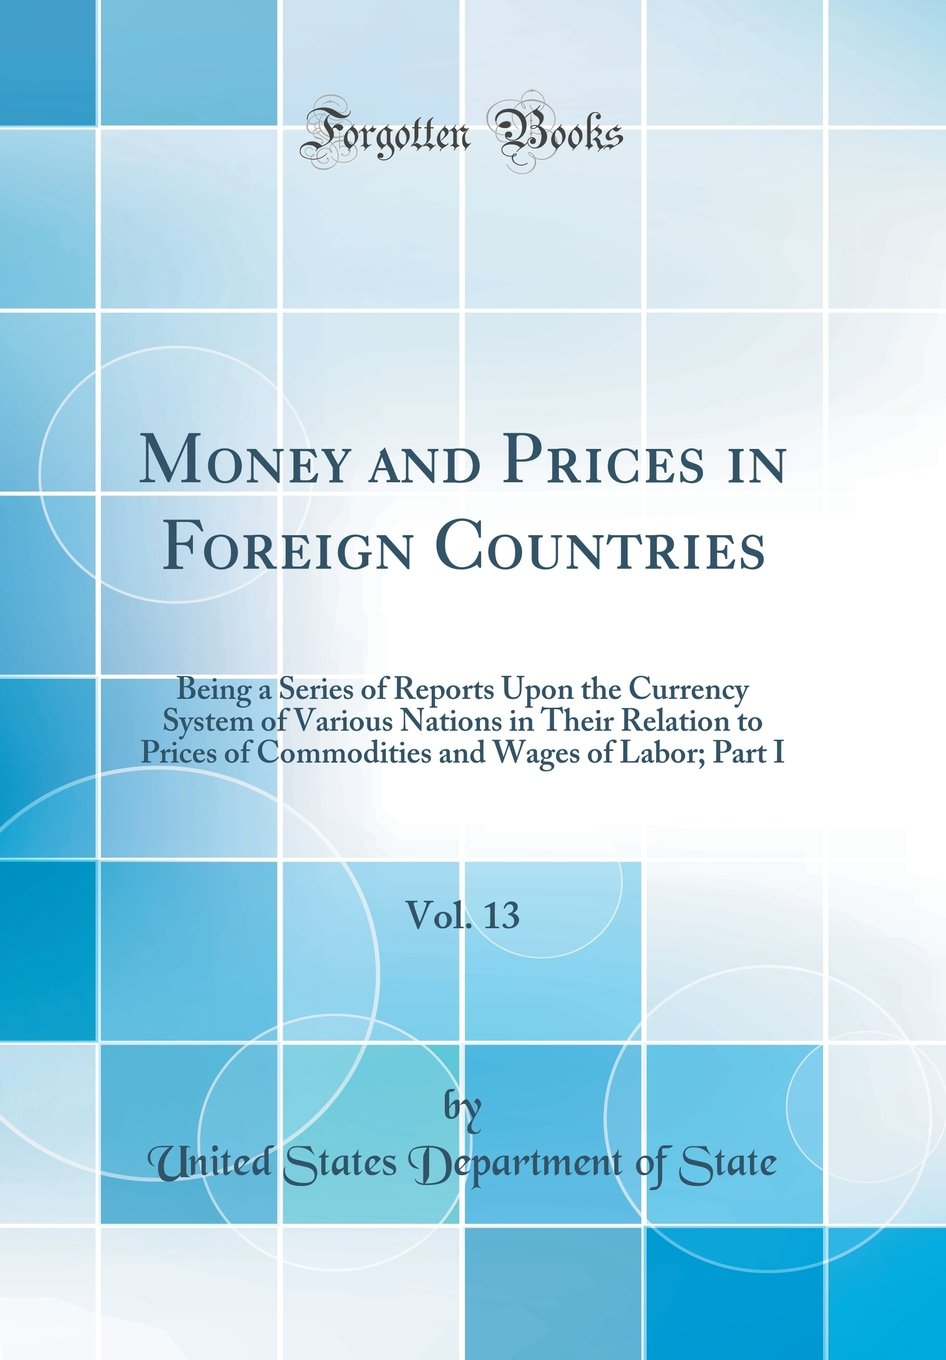 Download Money and Prices in Foreign Countries, Vol. 13: Being a Series of Reports Upon the Currency System of Various Nations in Their Relation to Prices of ... and Wages of Labor; Part I (Classic Reprint) pdf